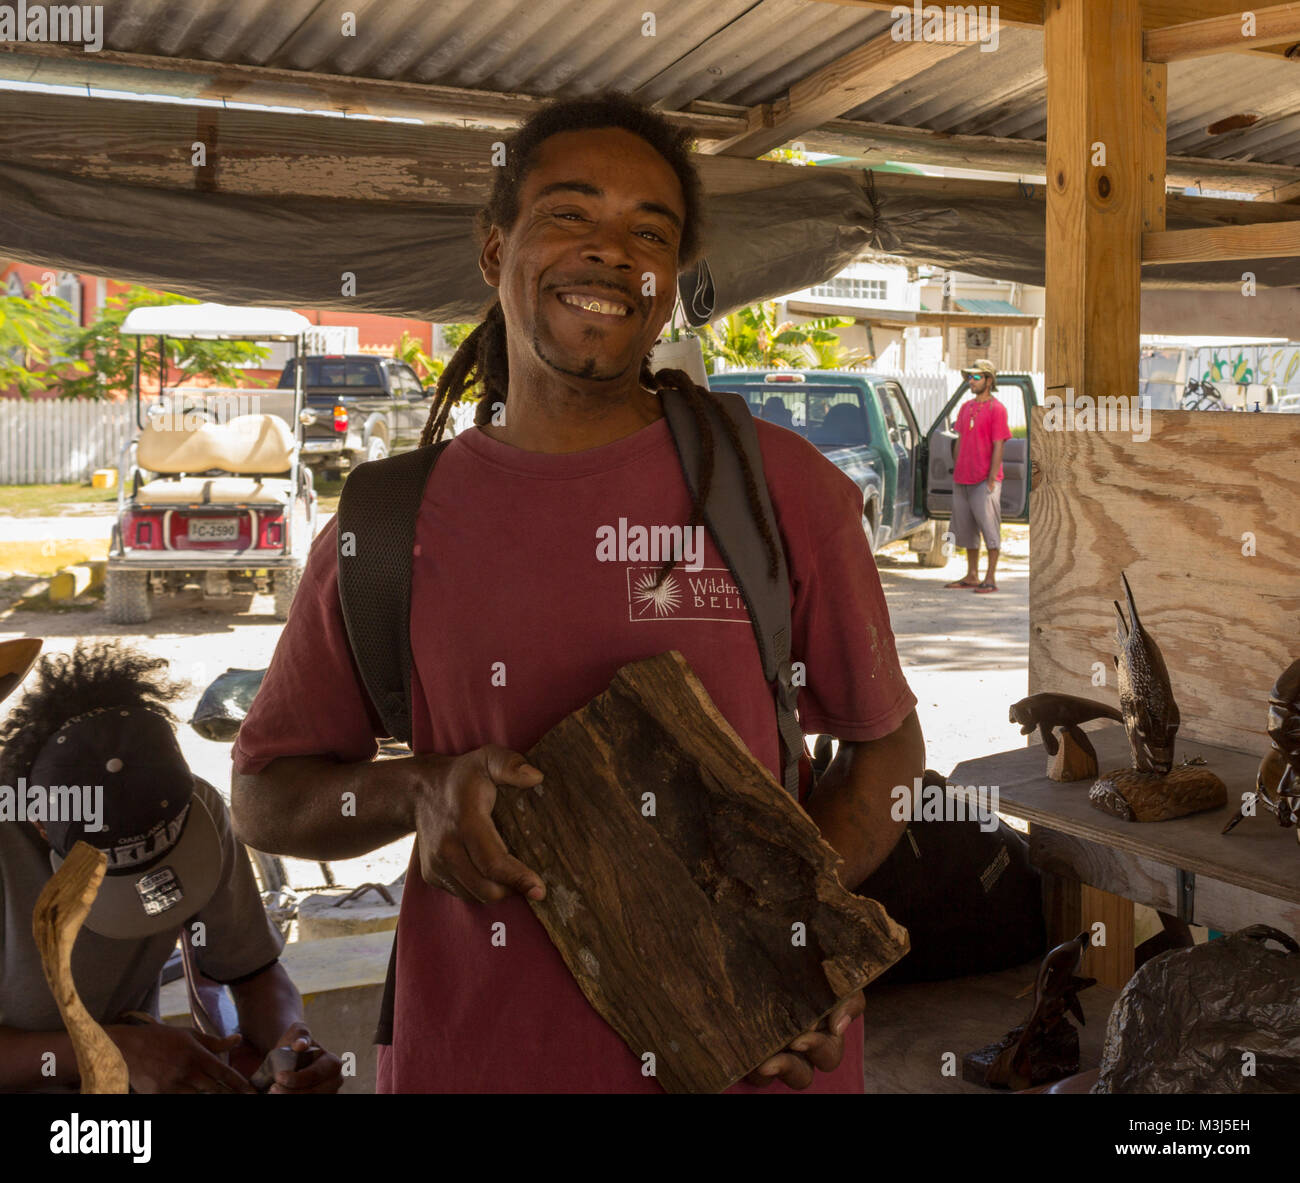 San Pedro, Ambergris Caye, Belize - January 27, 2018:  A local artisan displays a piece of wood that will soon become - Stock Image